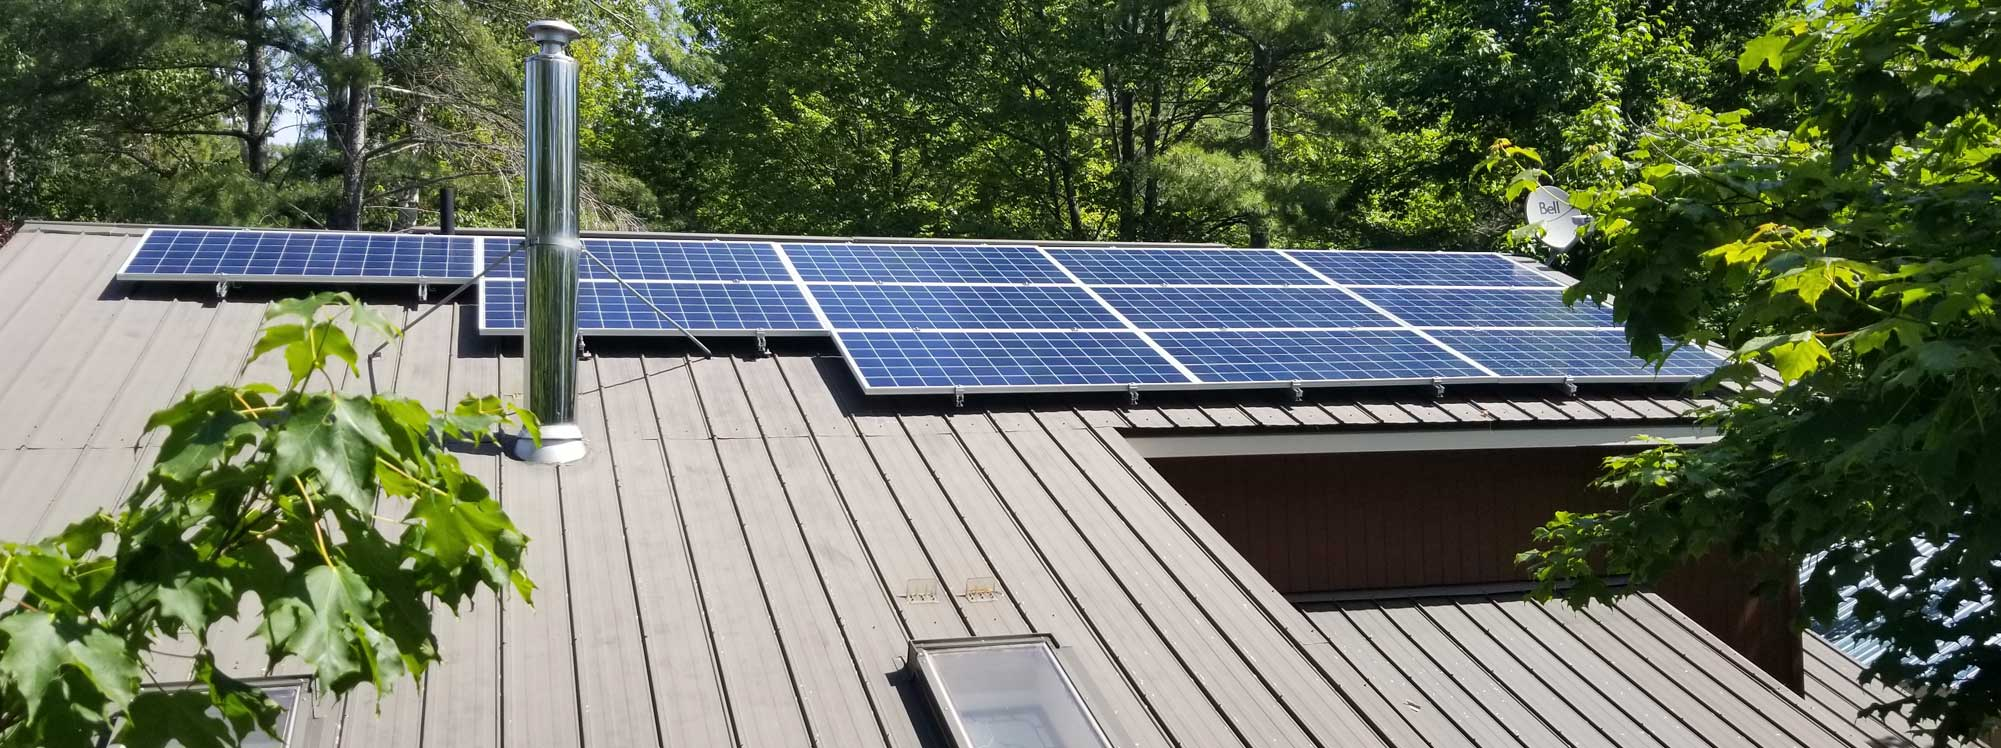 Net-metering to save energy